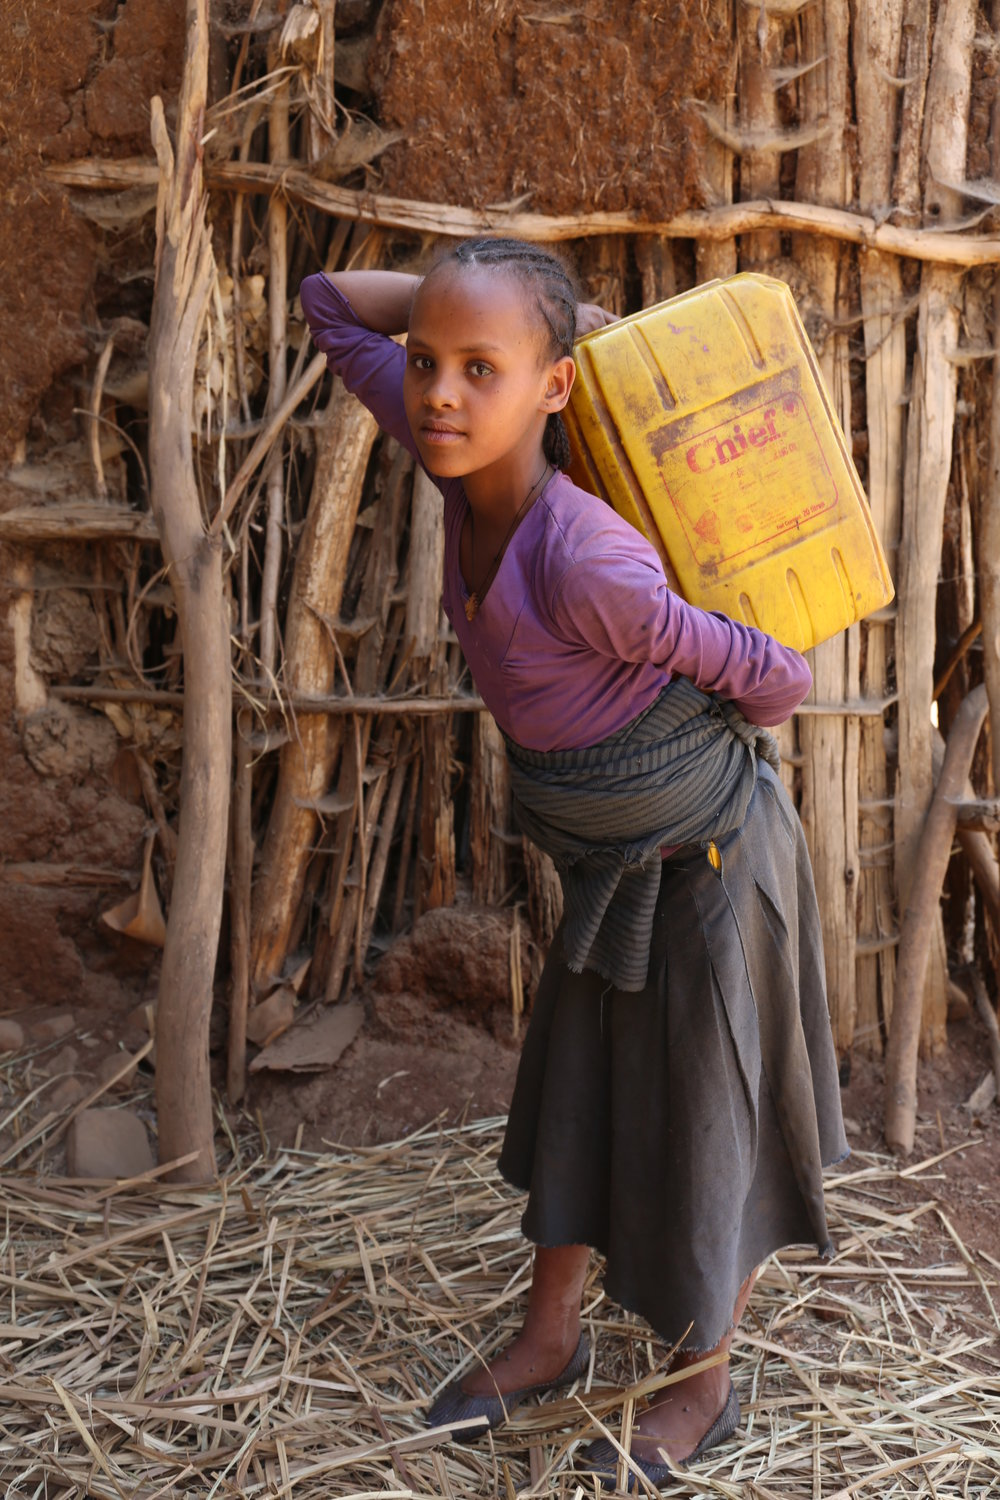 Nitsuh - Amhara, Ethiopia. - WaterAid/Behailu Shiferaw